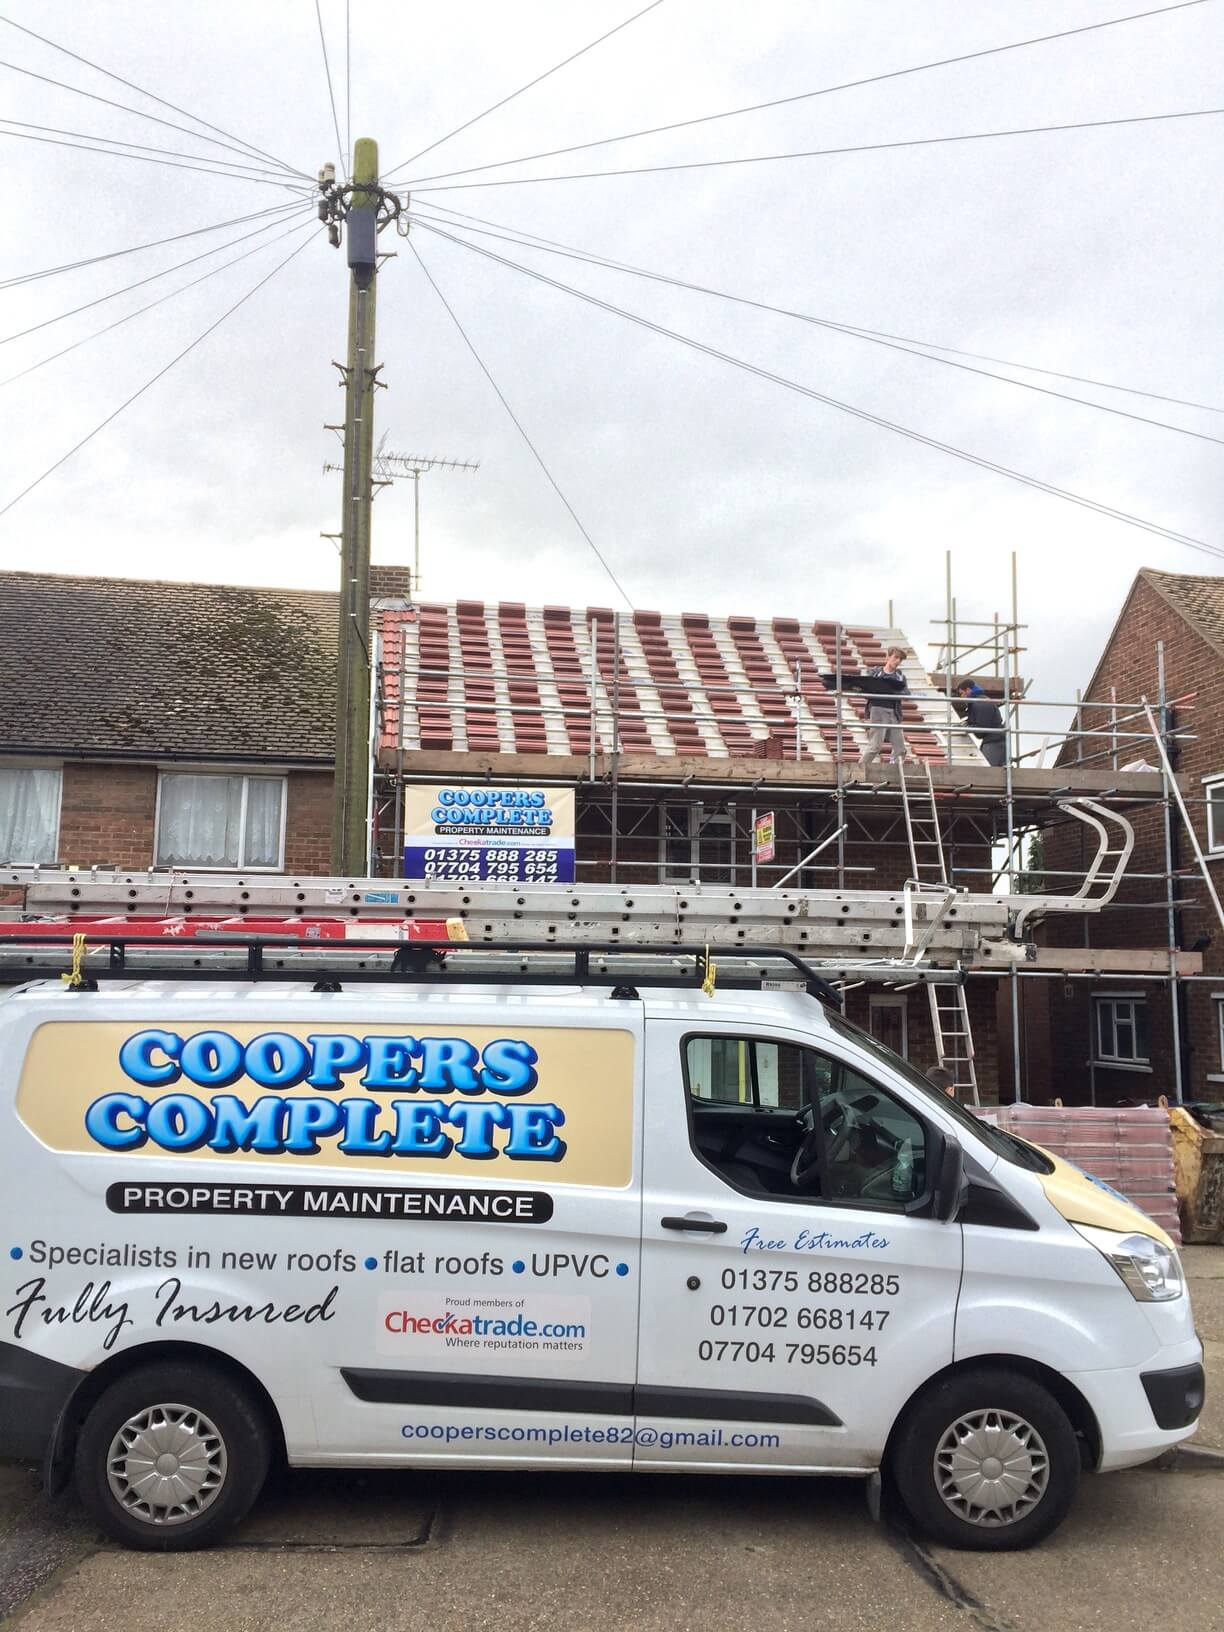 Our Services Are Competitively Priced, And Coopers Complete Roofing Have  Been Providing A Professional Service To All Our Customers For Over Ten  Years.